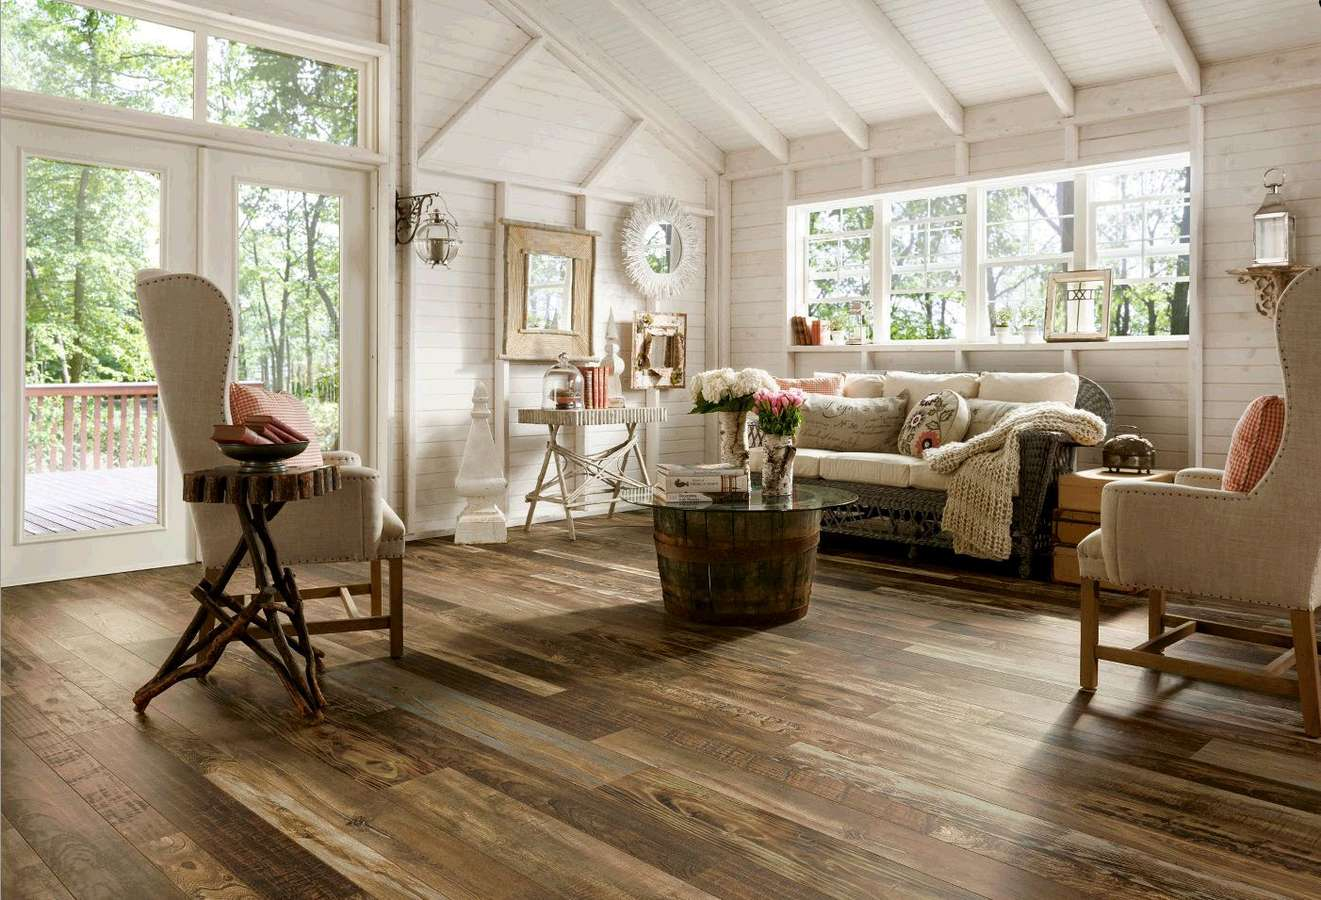 elegant white sunroom idea with open plan and white stunning modern  furniture idea and white washed - Most Durable Hardwood Floor Will Make Your House Appears With Awe